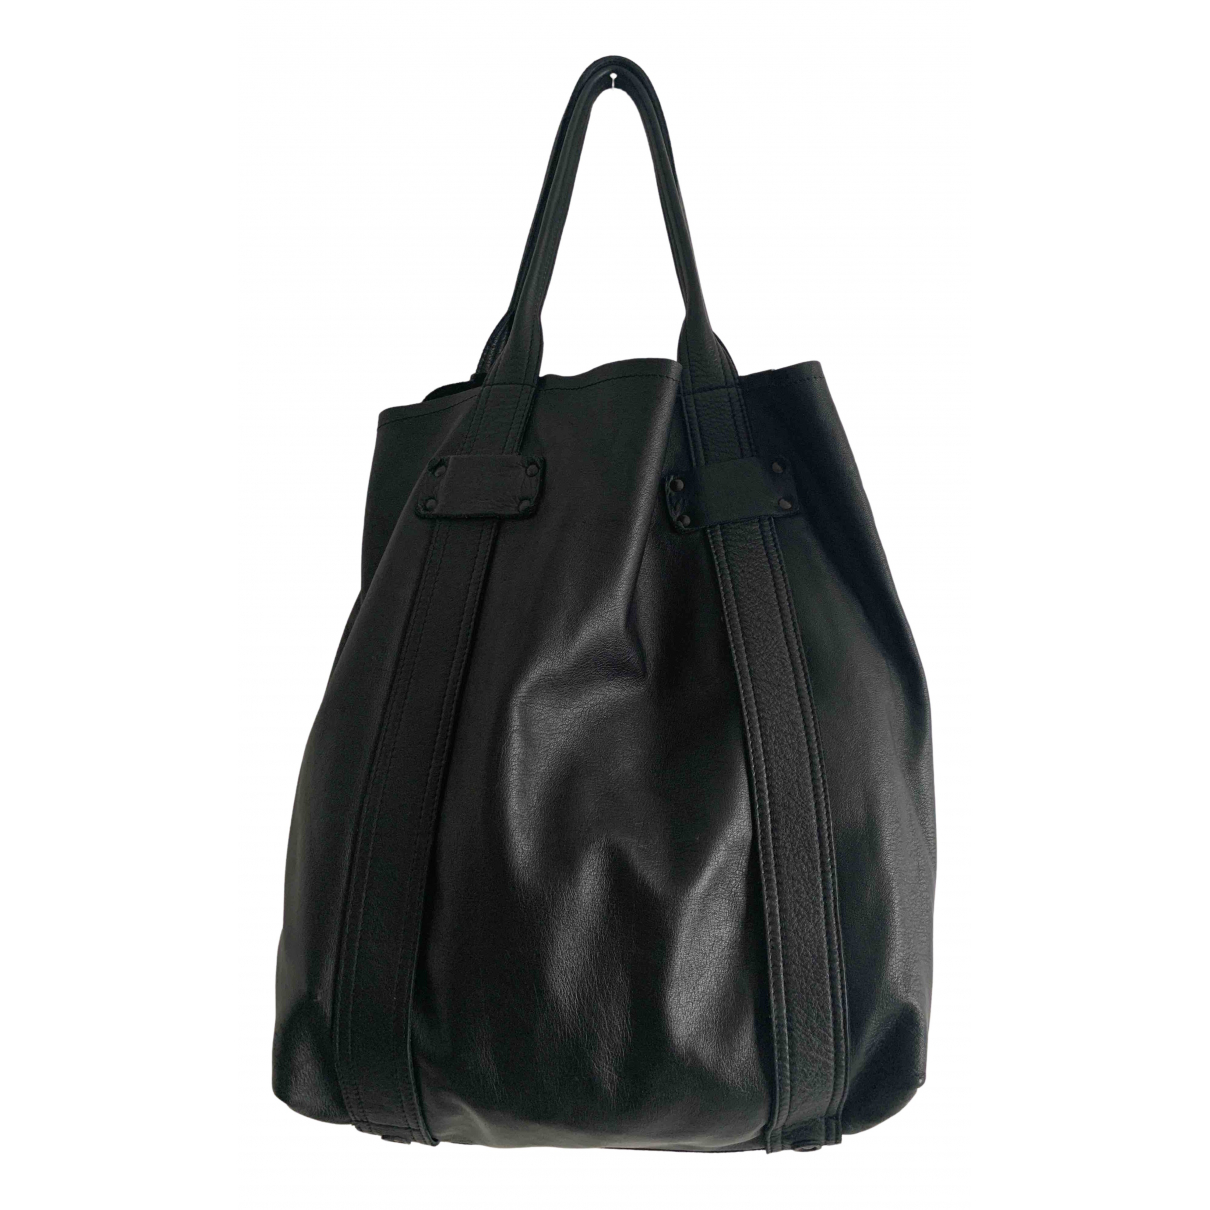 Stephane Verdino \N Black Leather handbag for Women \N